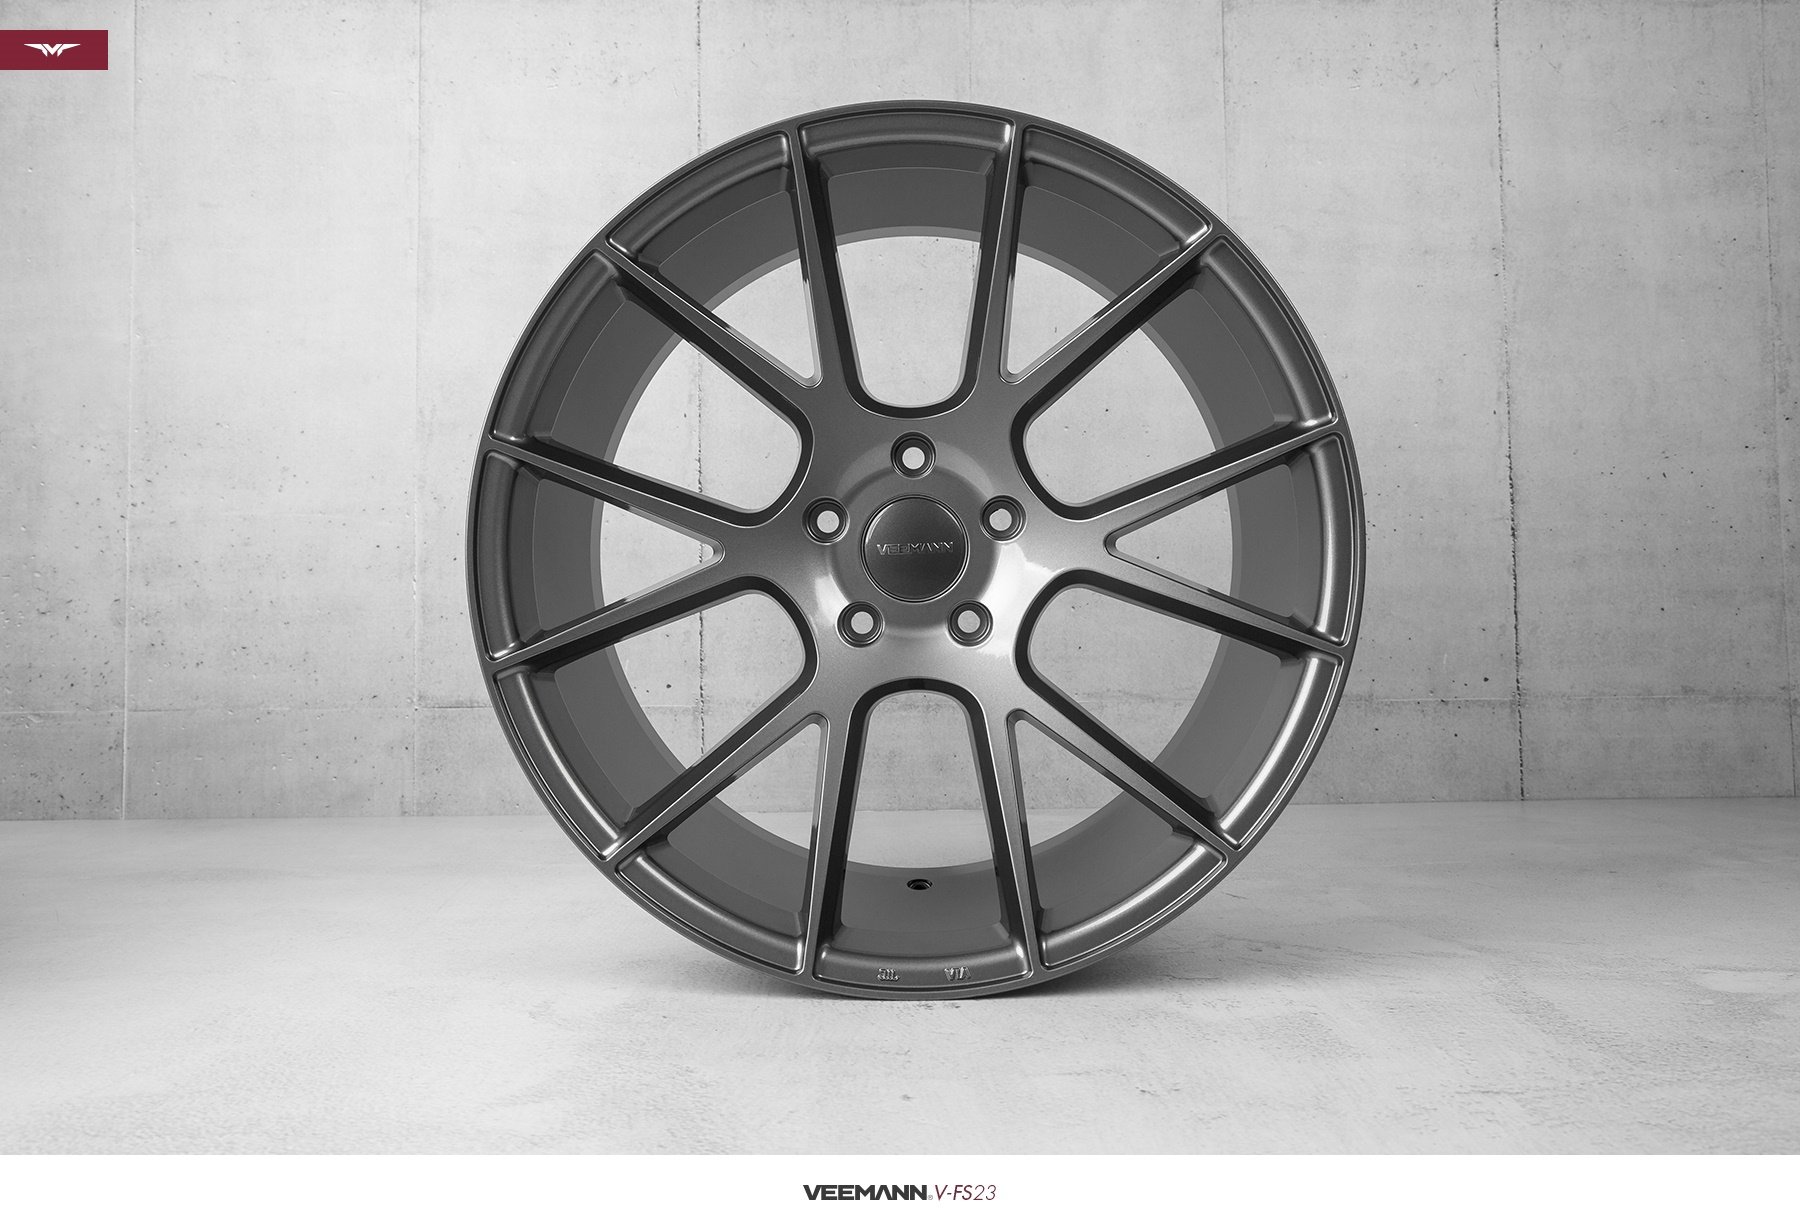 "NEW 18"" VEEMANN V-FS23 ALLOYS IN GLOSS GRAPHITE WITH WIDER 9"" REARS"